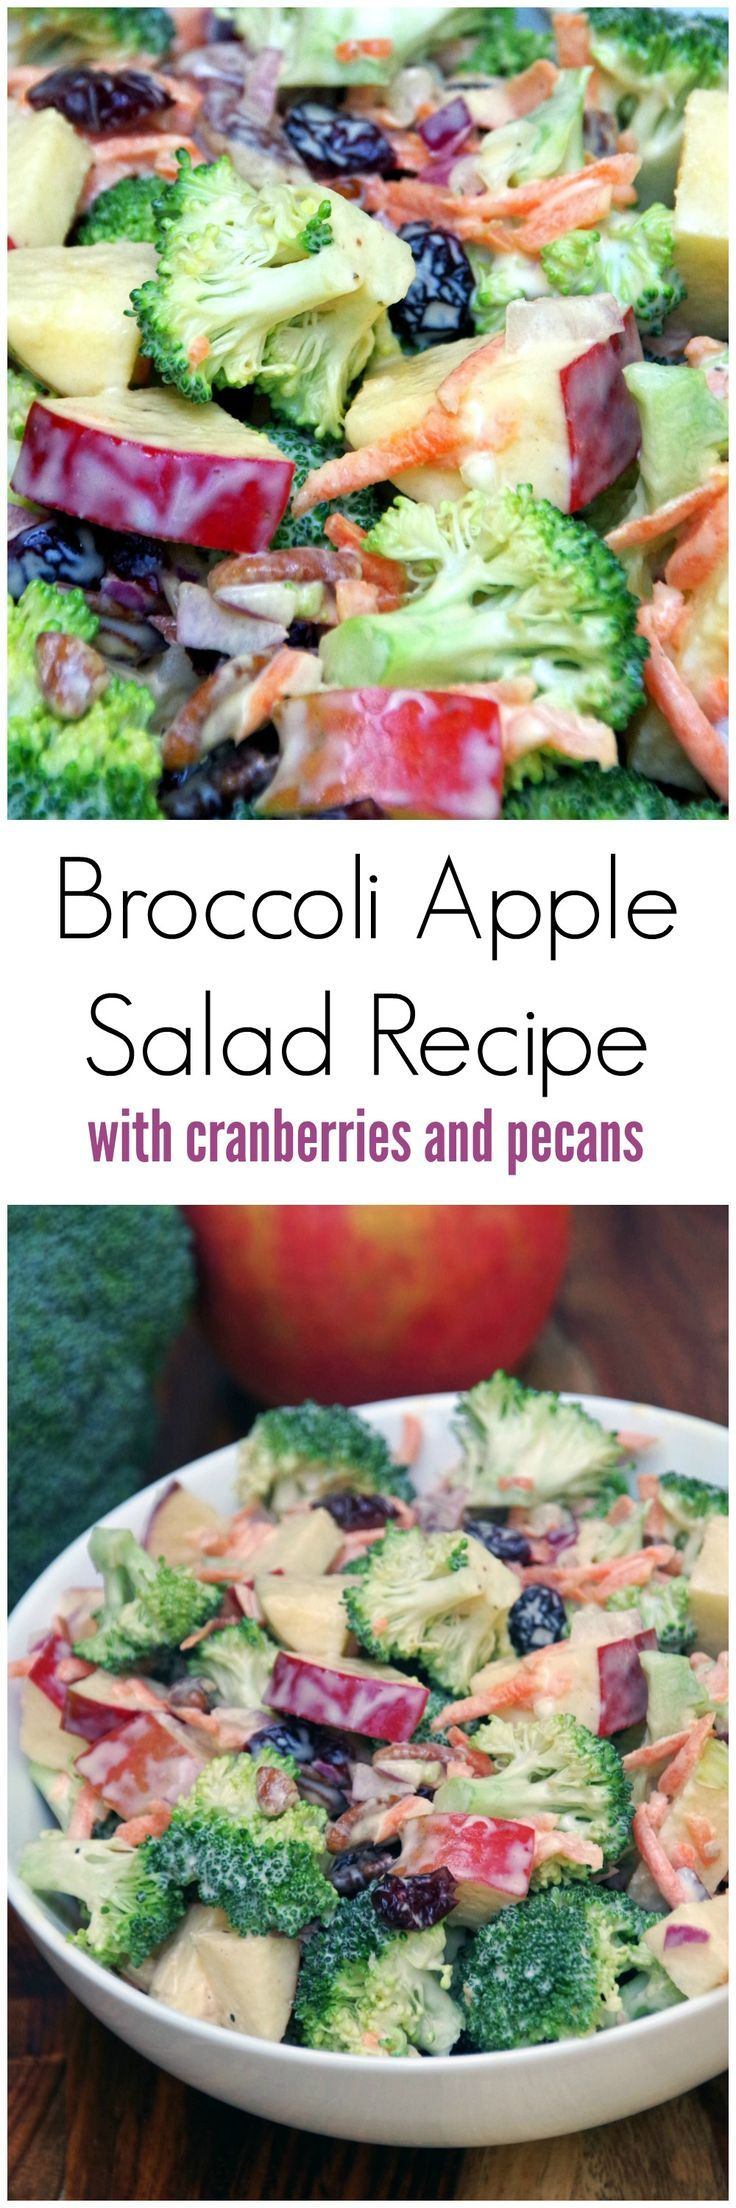 This broccoli apple salad recipe is easy to make with plenty of crunch.  No bacon so it is a great meatless salad recipe